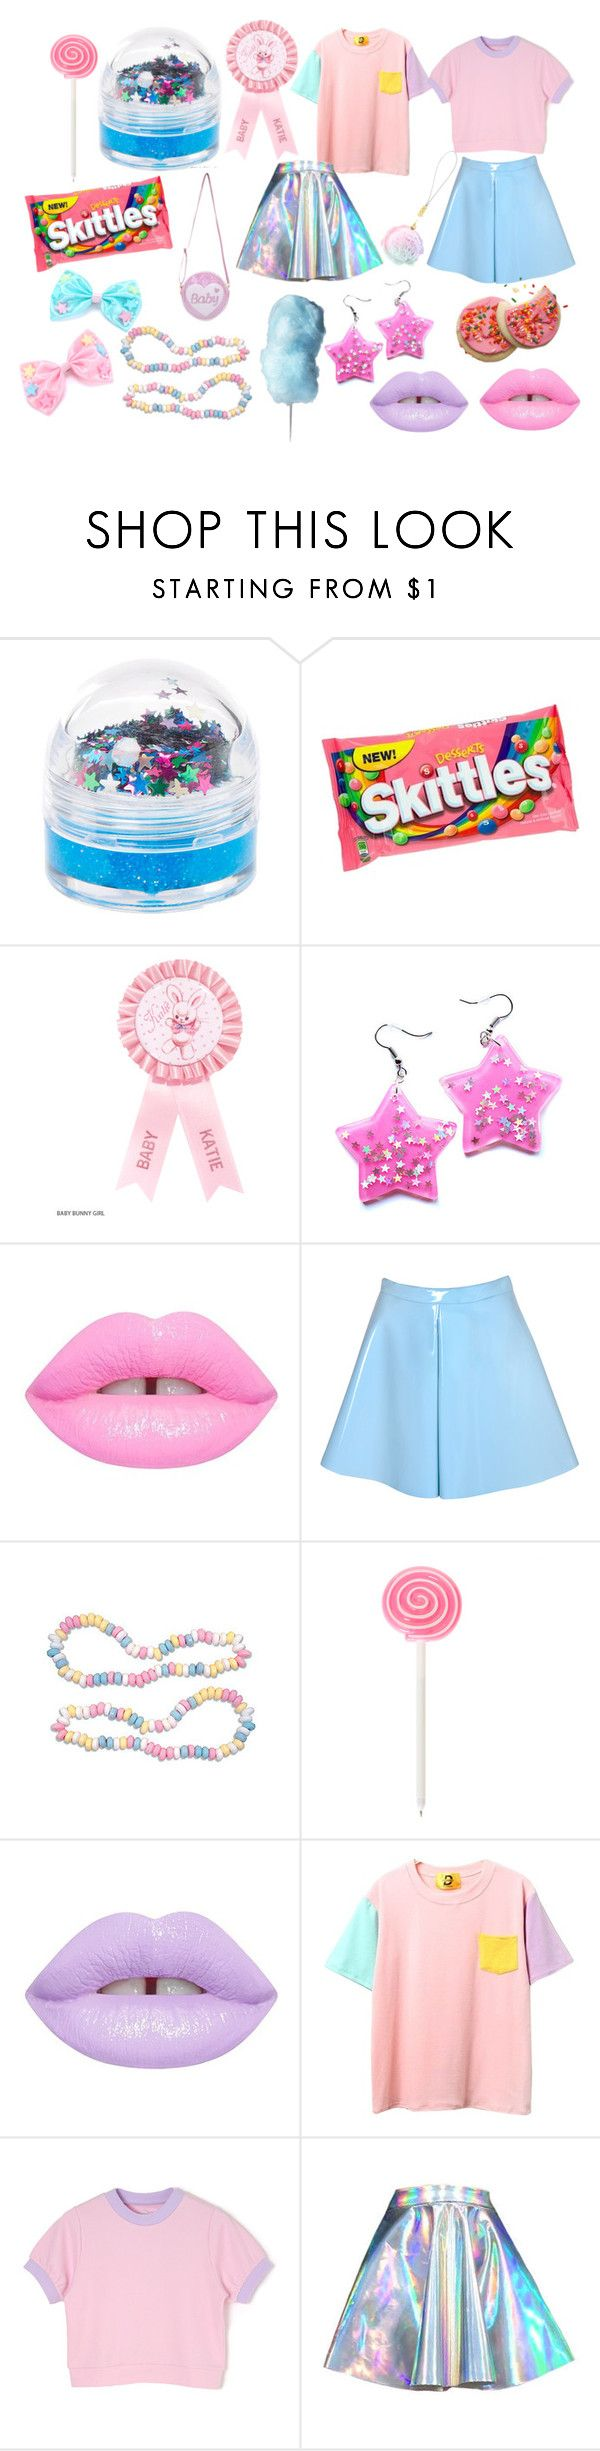 """Party Kei"" by infiglo ❤ liked on Polyvore featuring claire's, Lime Crime and Glamorous"